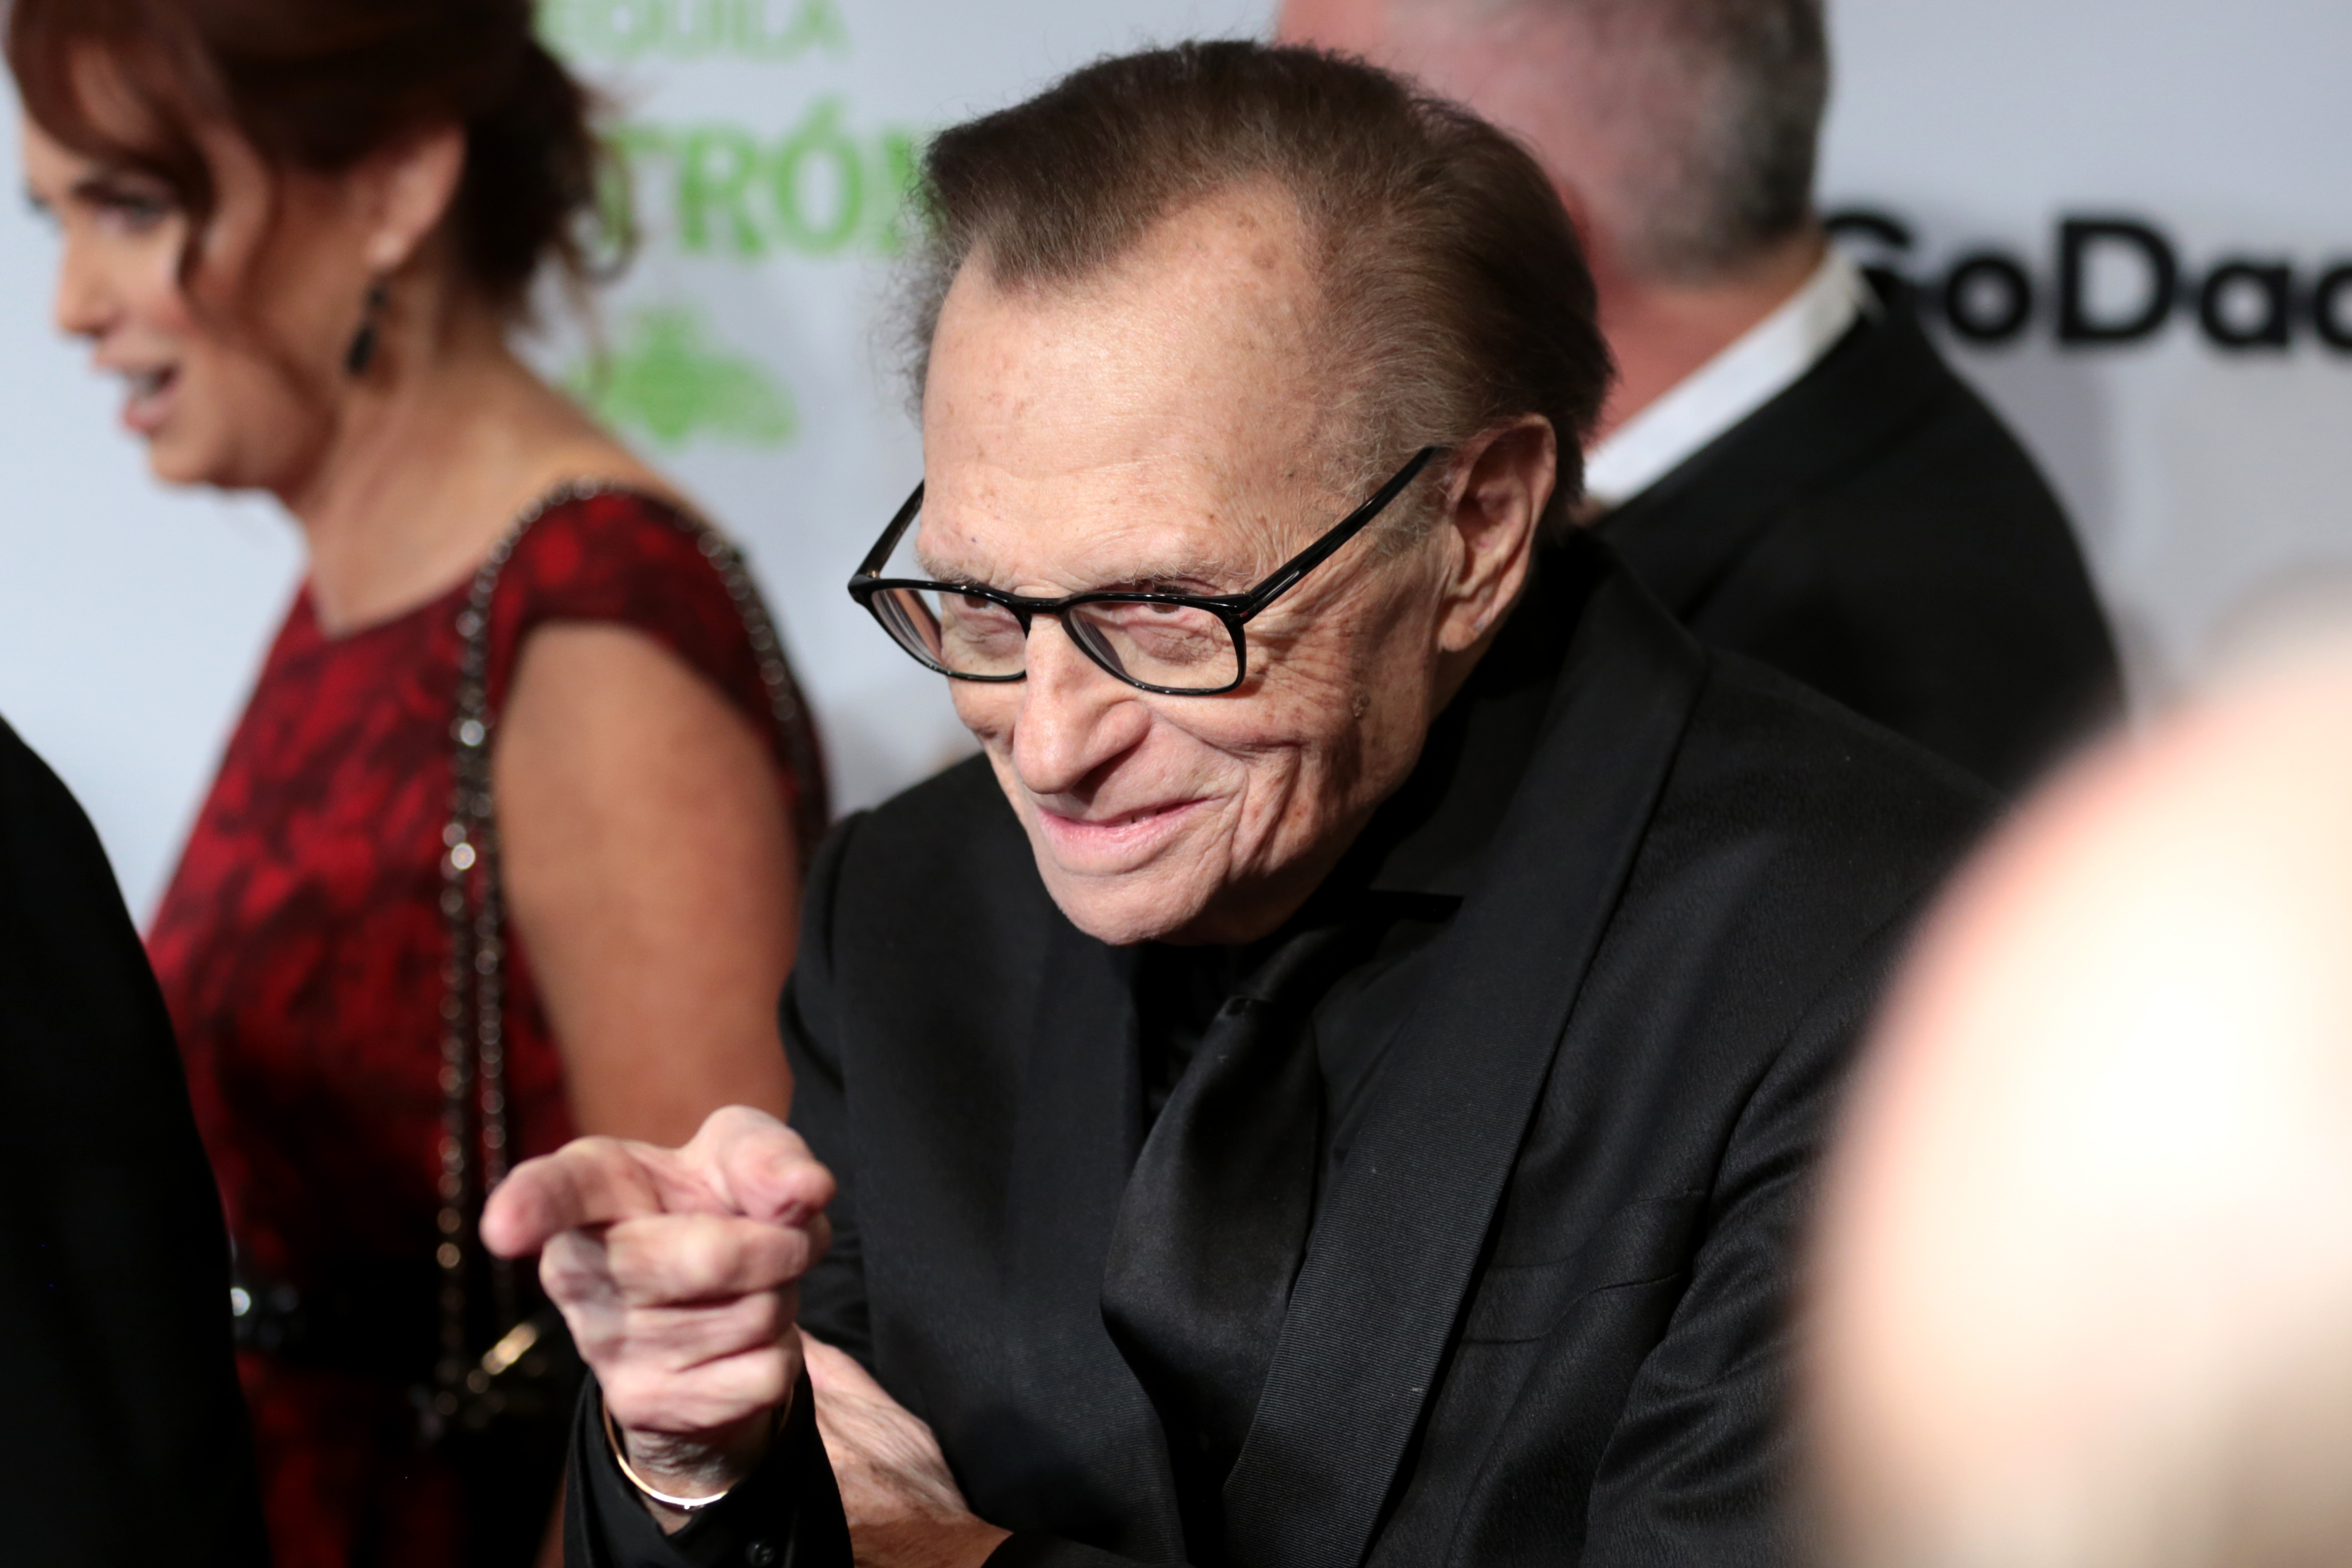 File:Larry King (33369306852).jpg - Wikimedia Commons